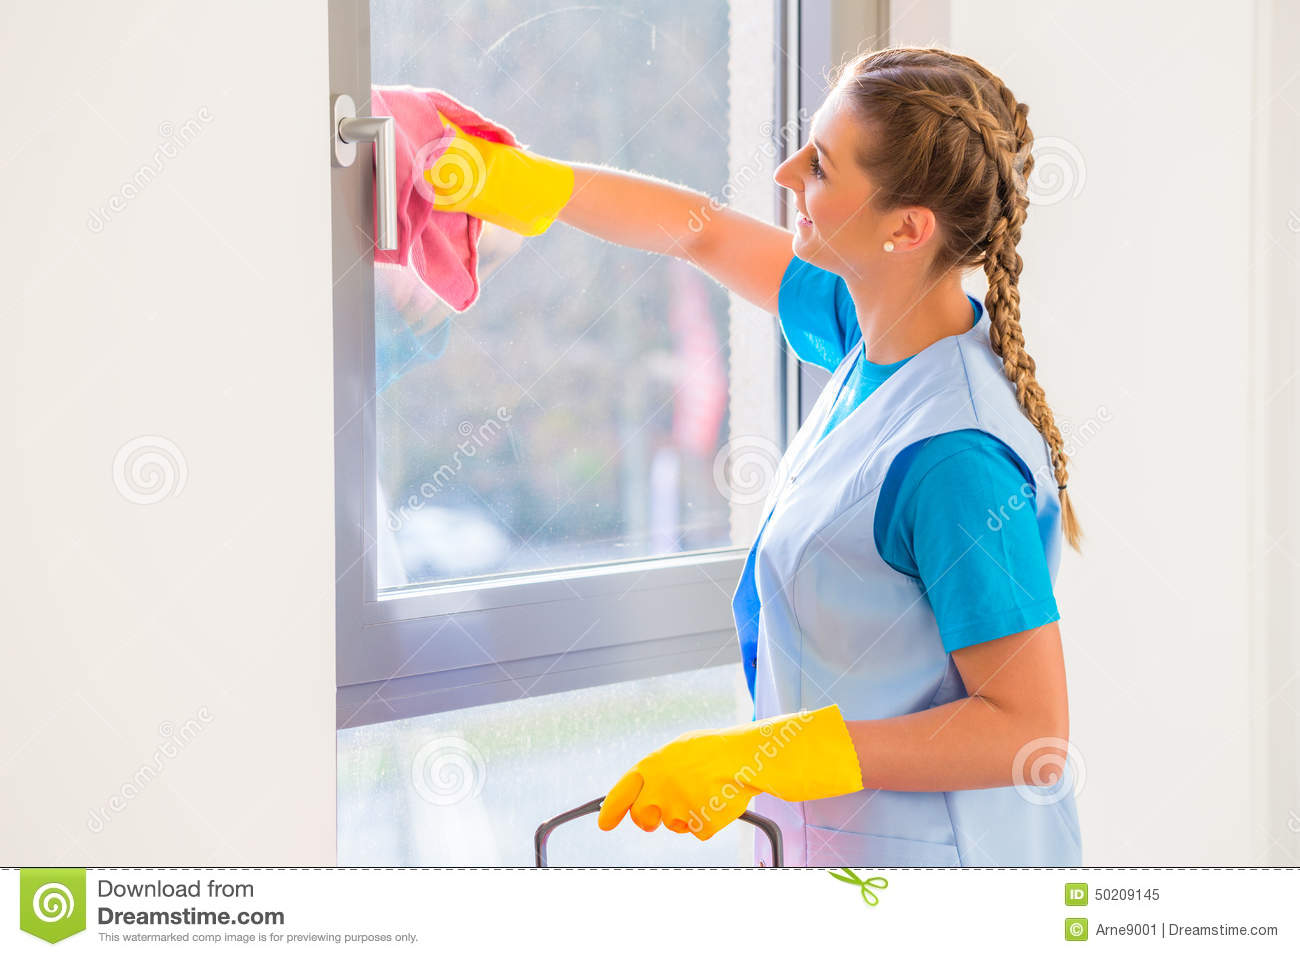 Cleaning lady with cloth